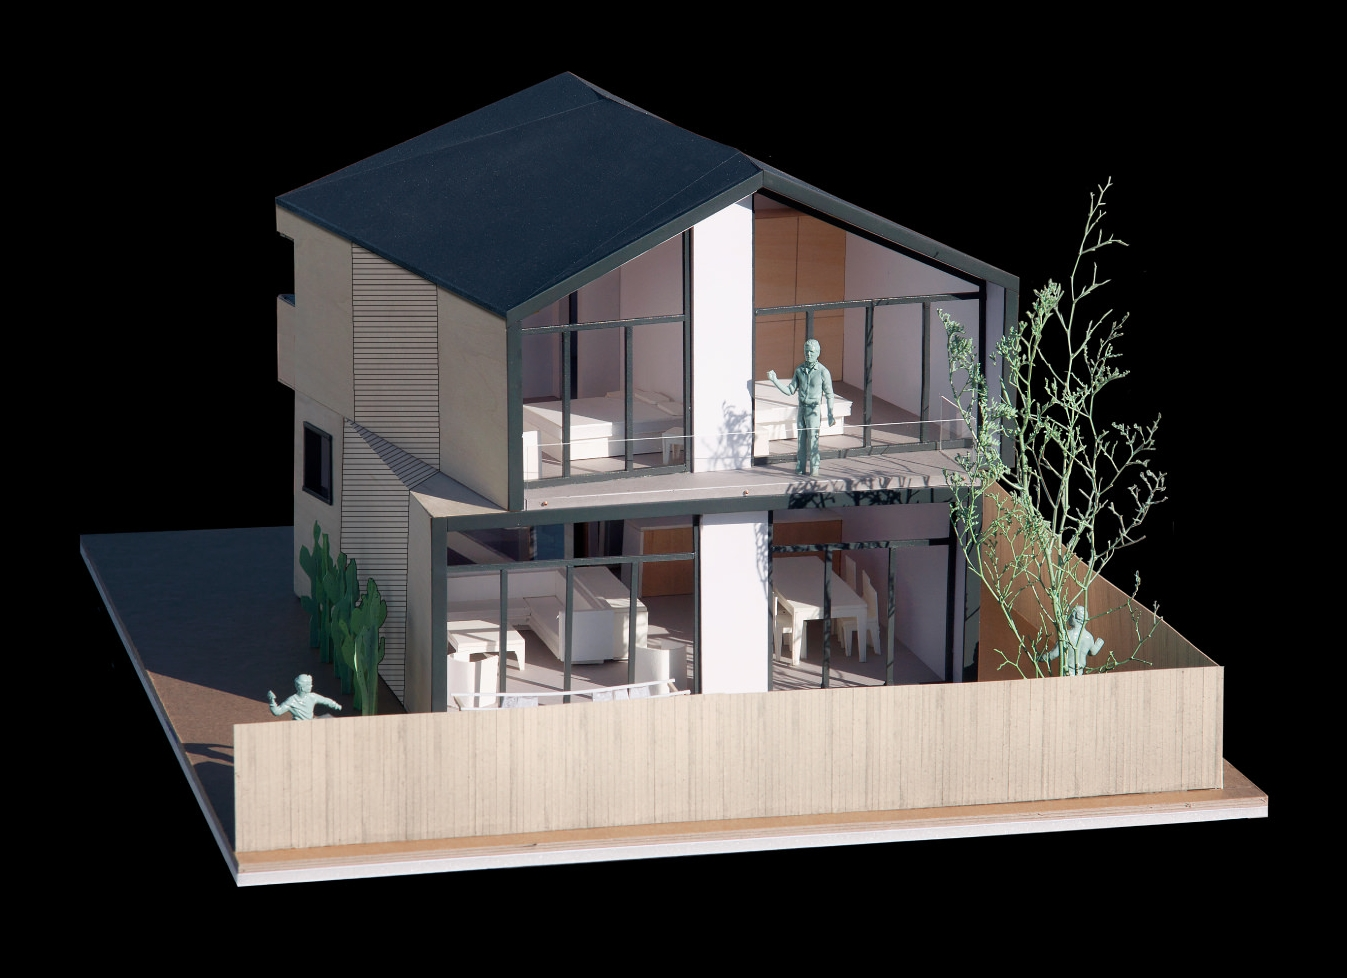 A model showing the rear of the two-story option.